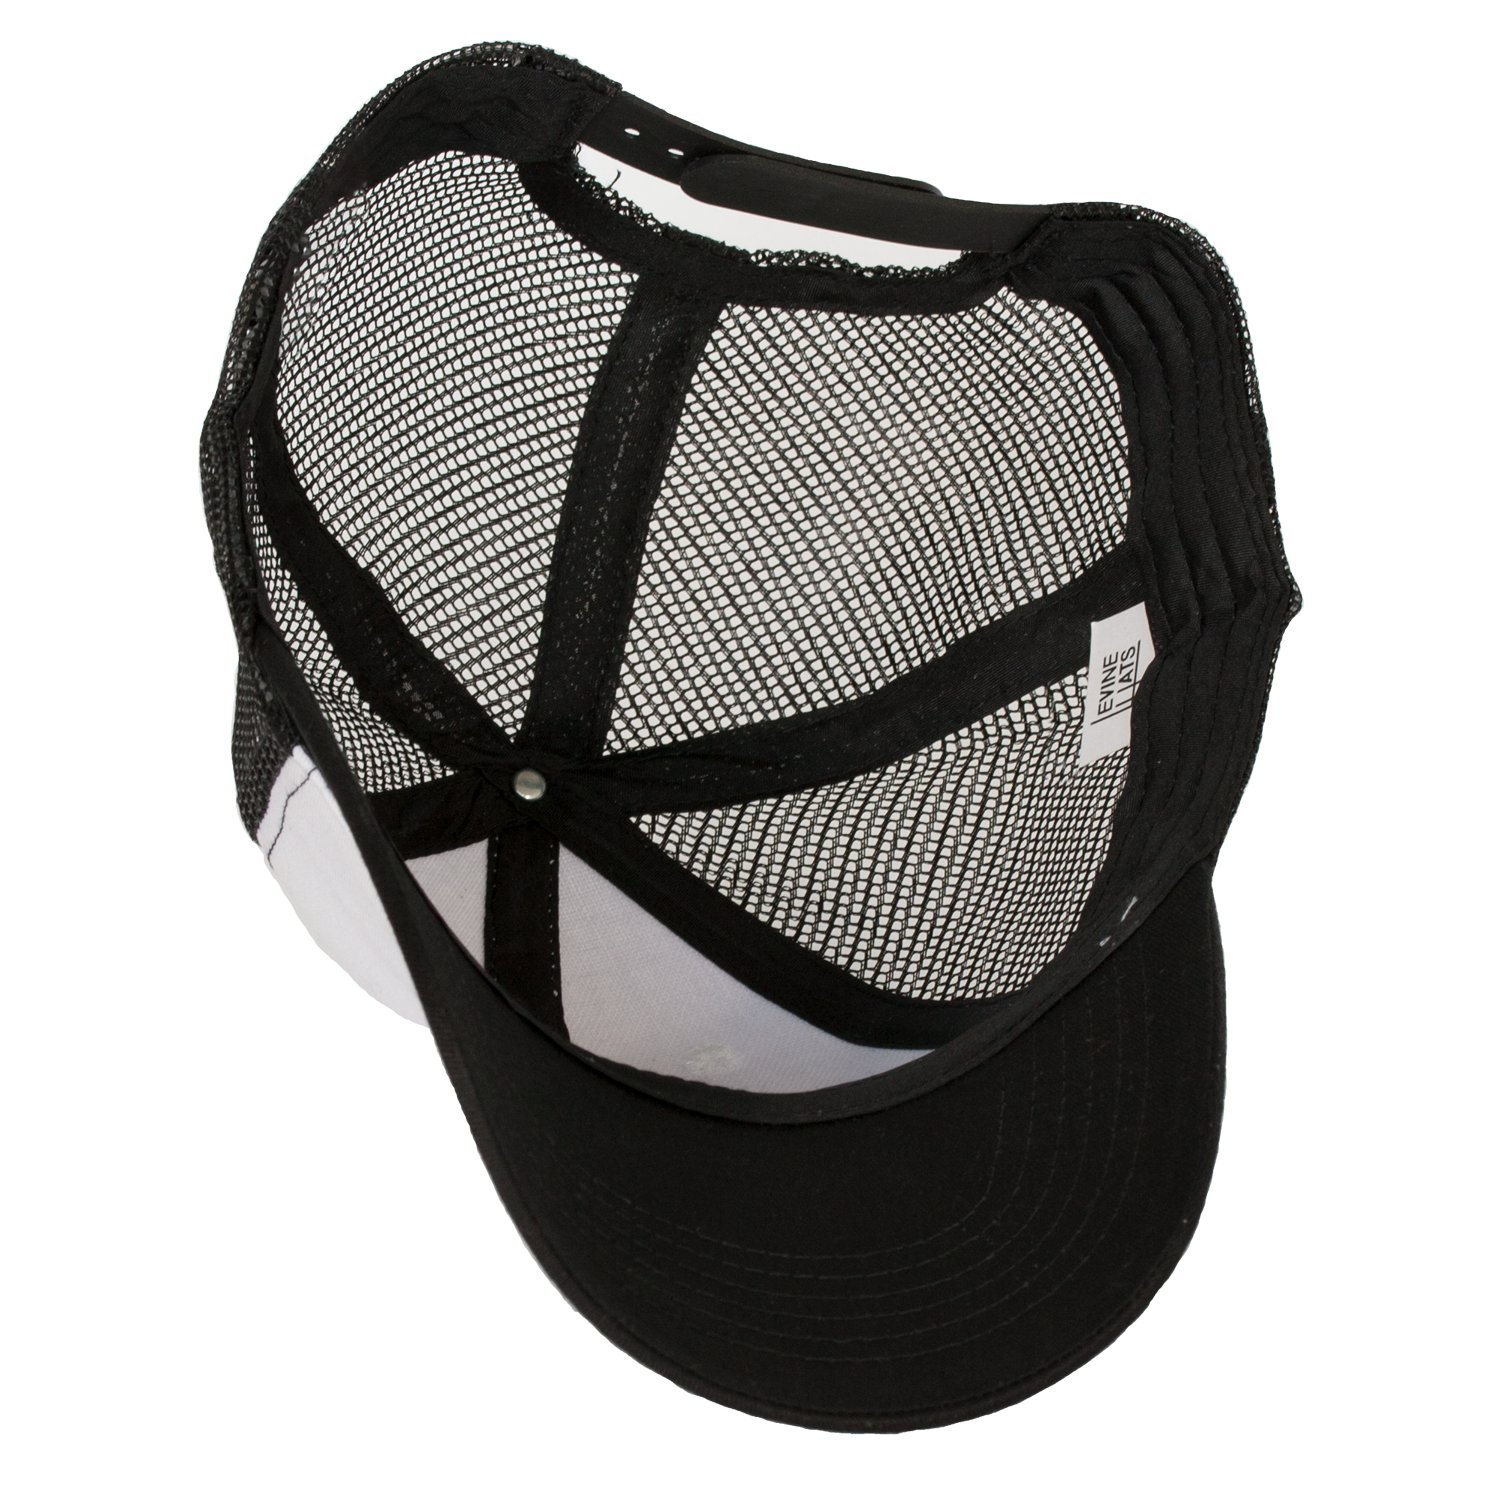 7c093af6b9d Amazon.com  Levine Hat Co Trucker Mesh Baseball Cap with Adjustable Snapback  (Black White Black)  Clothing